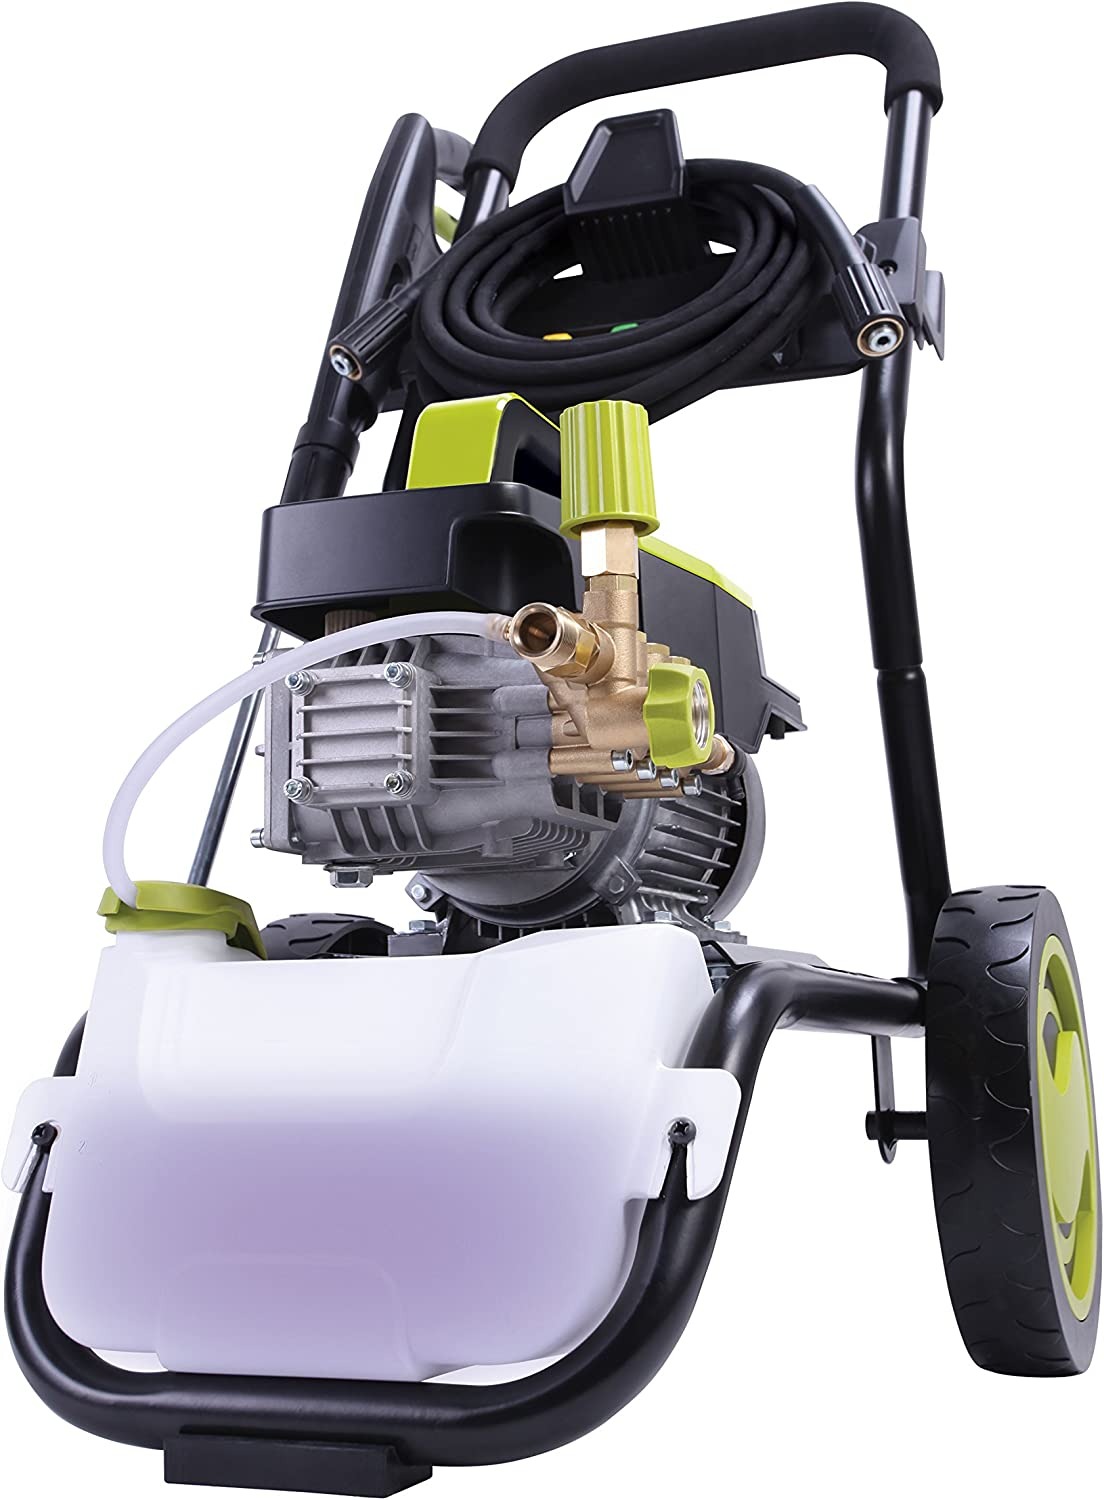 Sun Joe SPX9005-PRO Commercial Series 1300 PSI 2 GPM Max 2.15 HP Brushless Induction Motor Pressure Washer, w/Wall Mount and Roll Cage